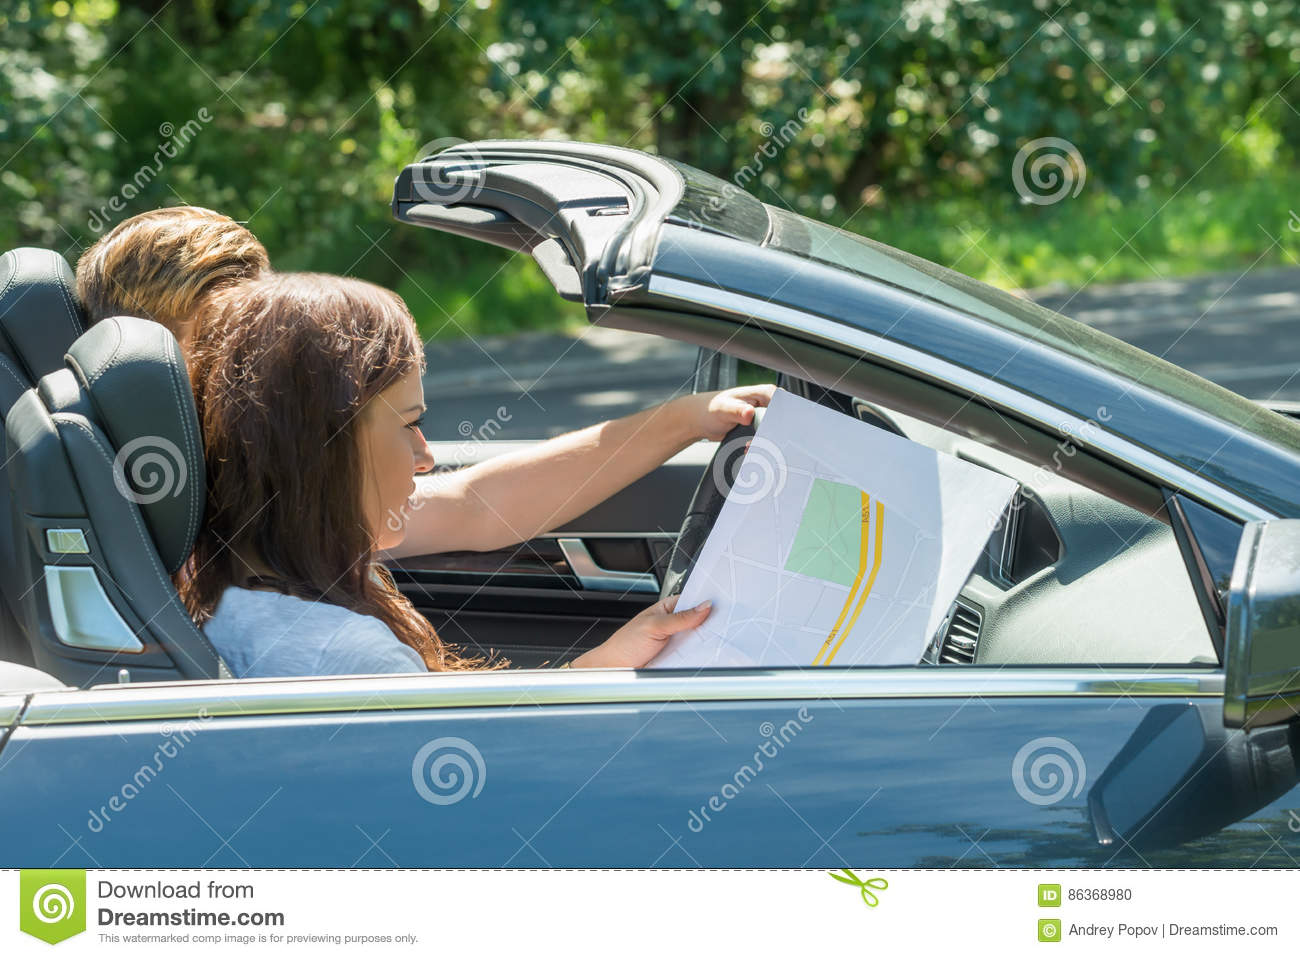 Woman Looking At Map While Man Driving Car Stock Photo ... on maps of city arlington va, maps to print, maps satellite view, maps app icon, maps location history, maps travel directions, mapquest map, maps of only india physical, map it, city maps, maps and directions, maps teaching directions, travel directions, travel maps, maps get directions, basic map directions, maps on canvas, maps for kindergarten, maps street view, online maps, road map with directions, maps to color, print maps with directions, road maps, get directions, street maps, satellite maps, maps with driving directions, maps showing directions, mapquest directions, city street maps, maps with street names,